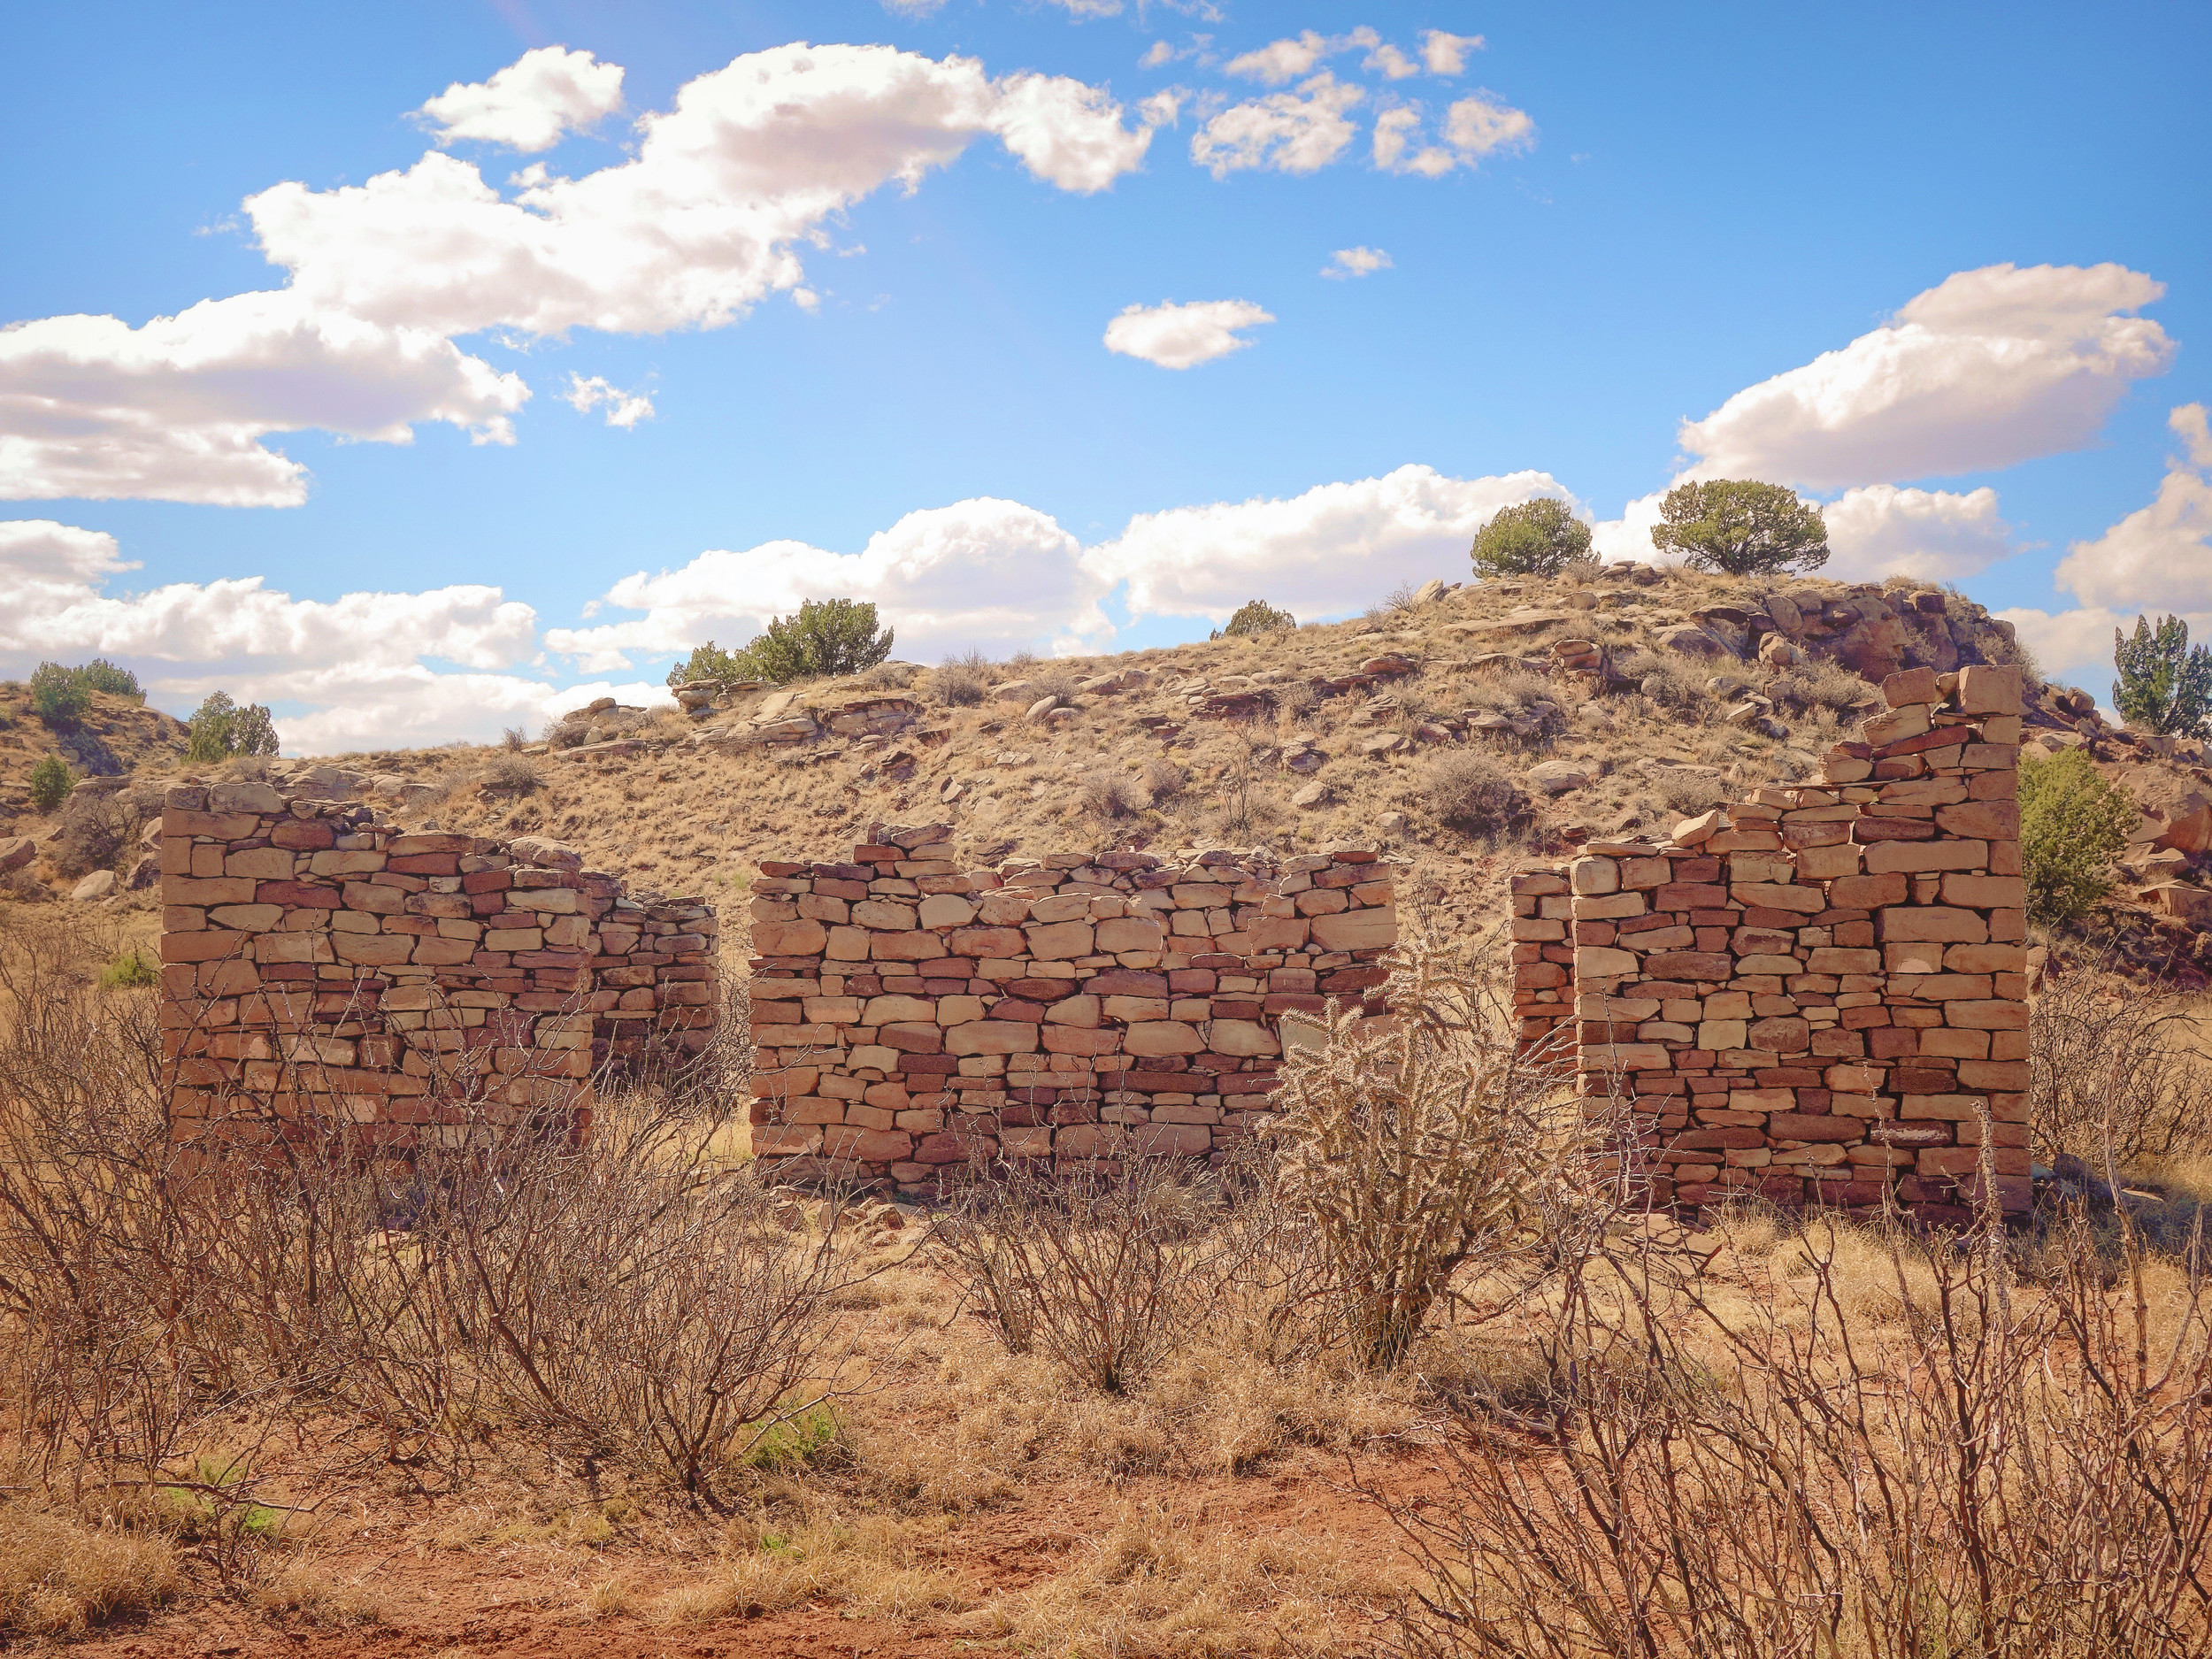 A sheepherder's stone cabin.